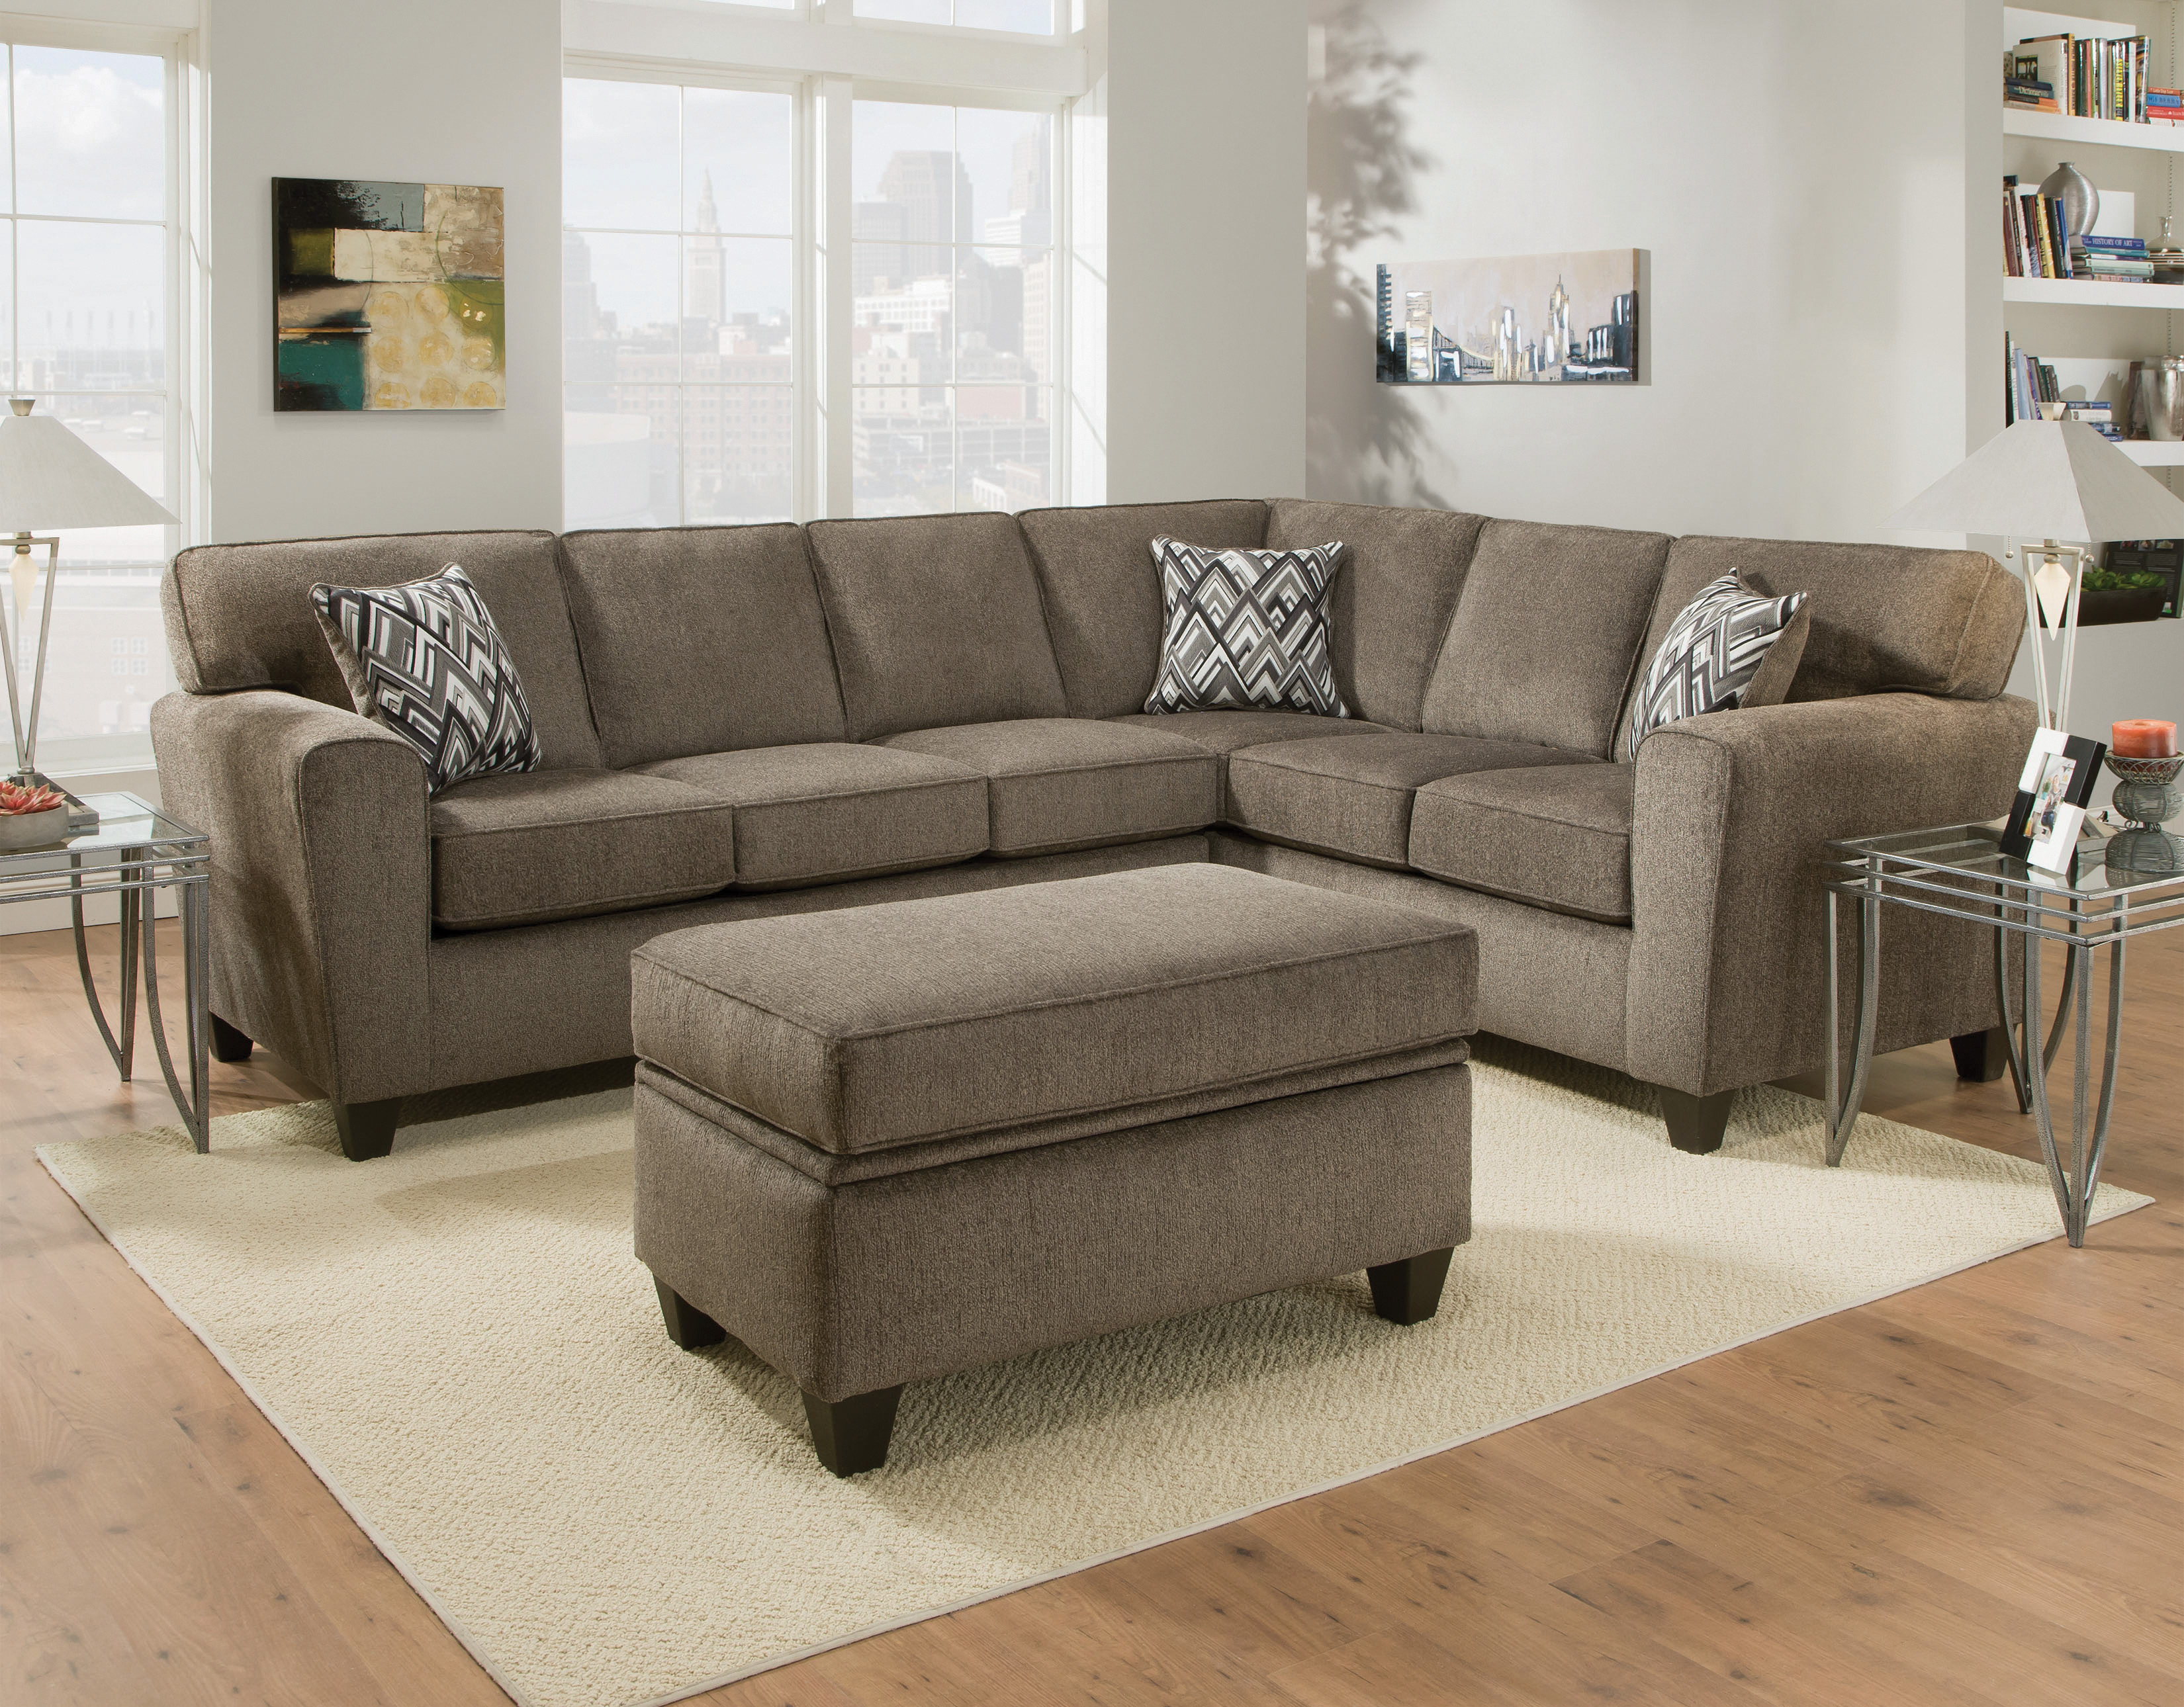 3100 Cornell Pewter Sectional – AWFCO Catalog Site